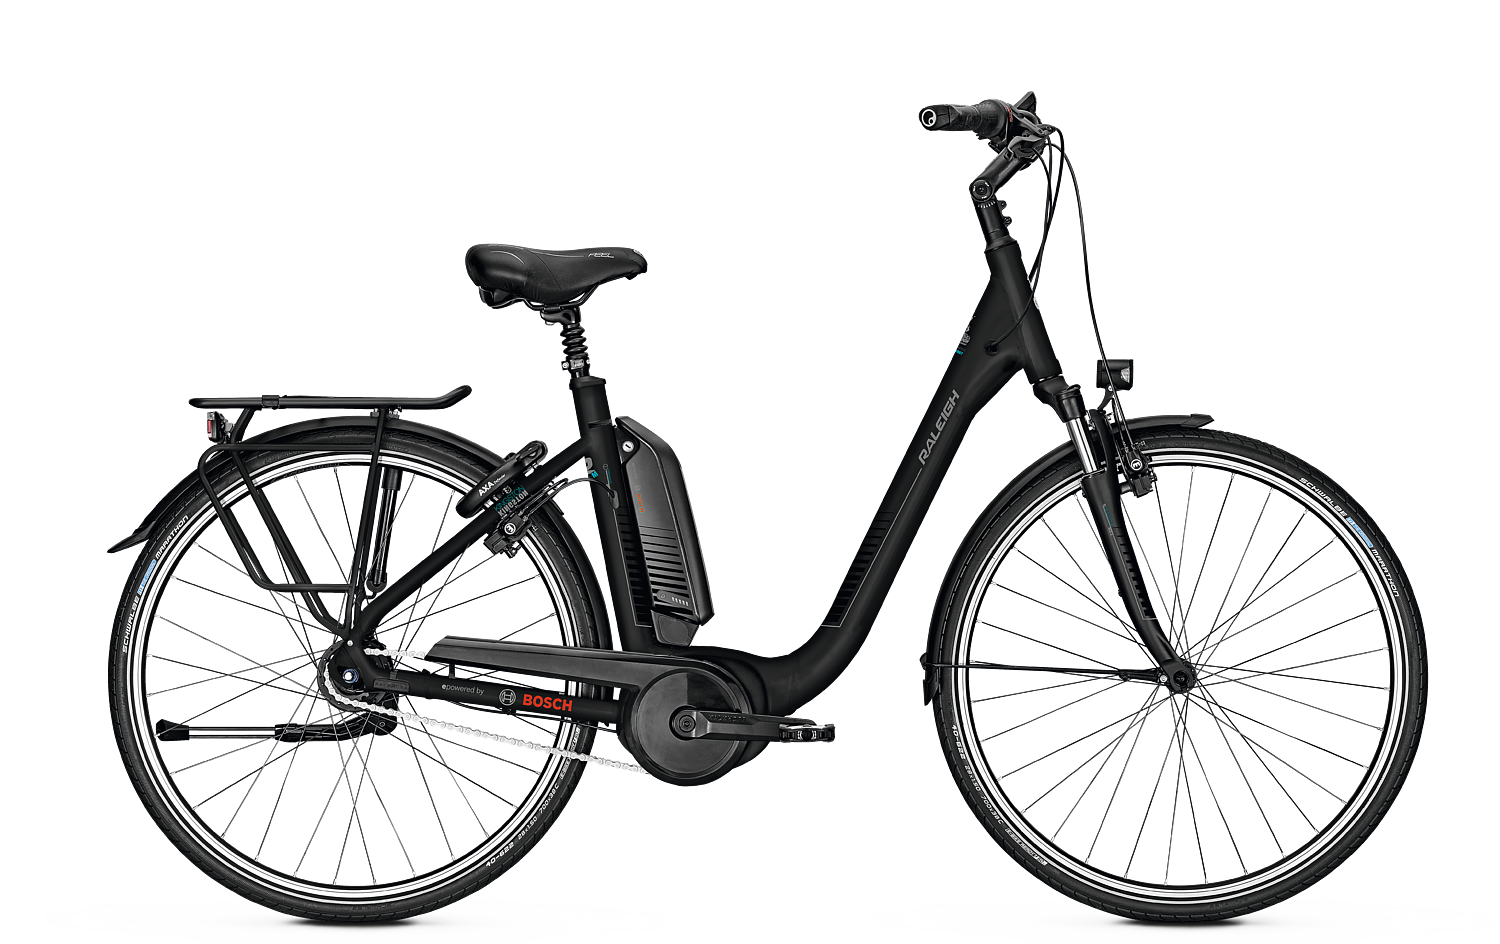 Raleigh KINGSTON - 28 Comfort FL 482 Wh - diamondblack matt 50 cm